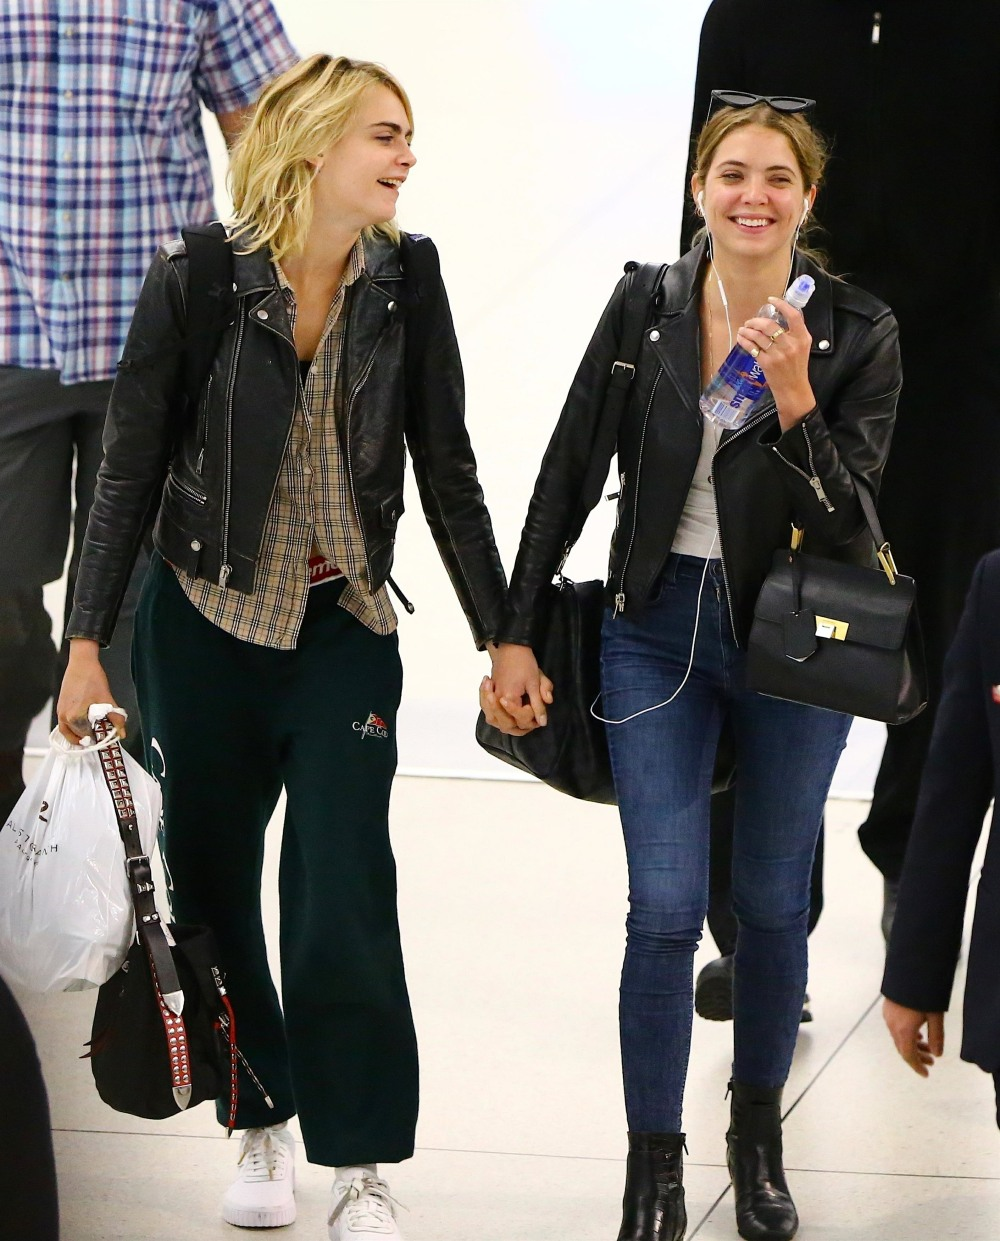 Newly Weds Alert! Cara Delevingne marries girlfriend Ashley Benson with a secret ceremony in Las Vegas**FILE PHOTOS**